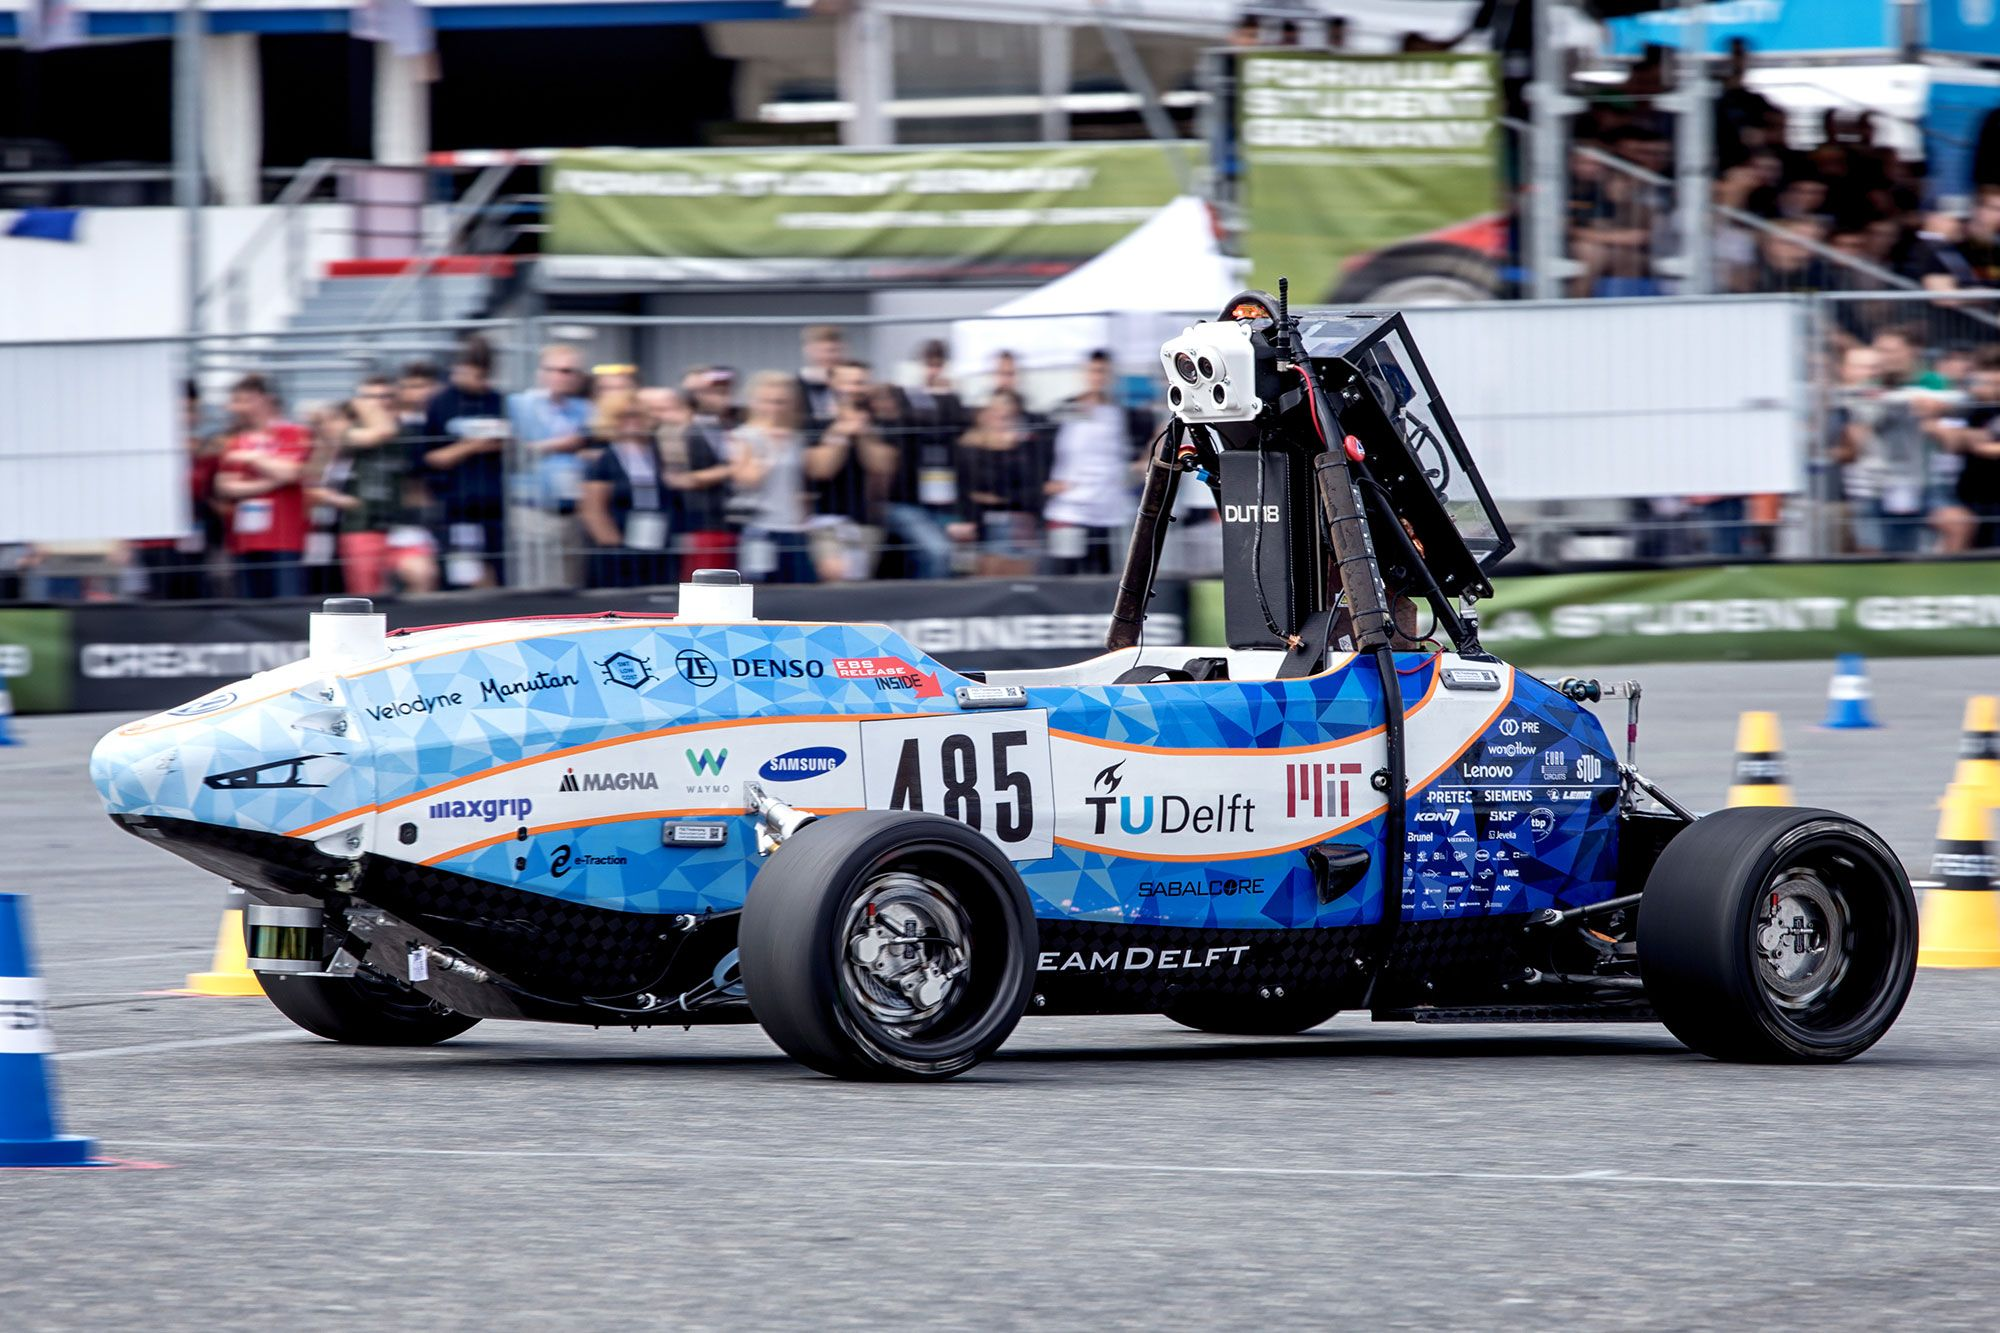 Mit Delft University Of Technology Team Places Third In Formula Student Germany Driverless Competition Mit News Massachusetts Institute Of Technology